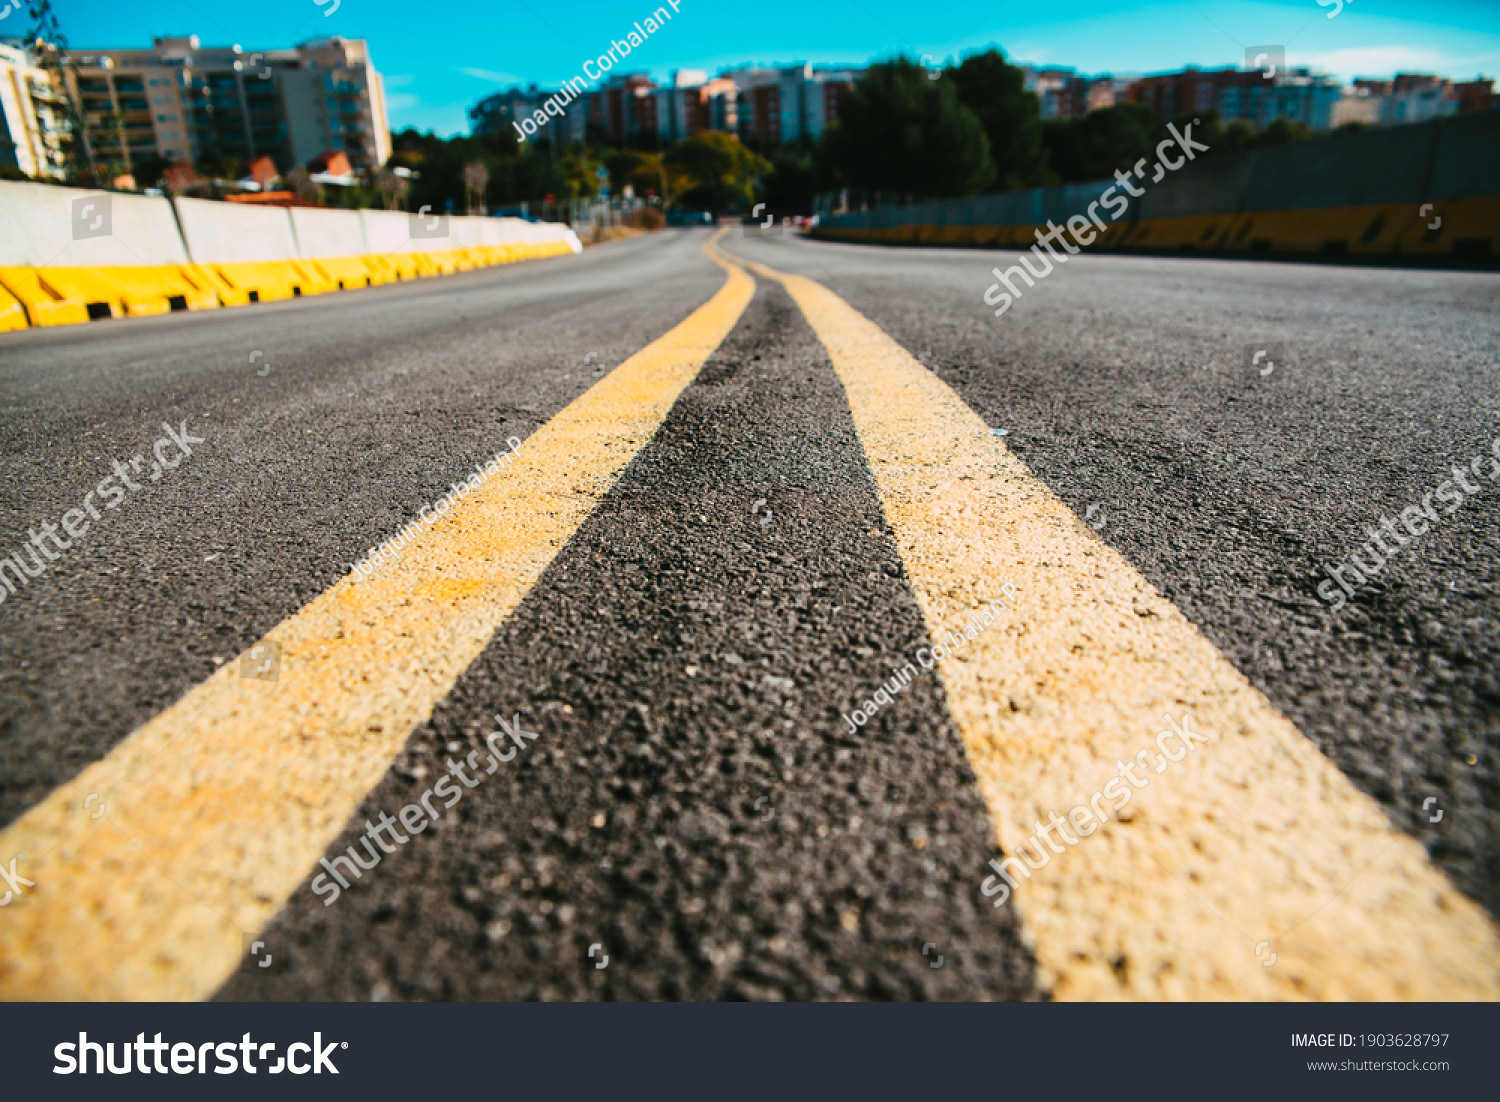 Stock Photo Double Yellow Line On The Black Asphalt Leading To The Entrance To The City 1903628797